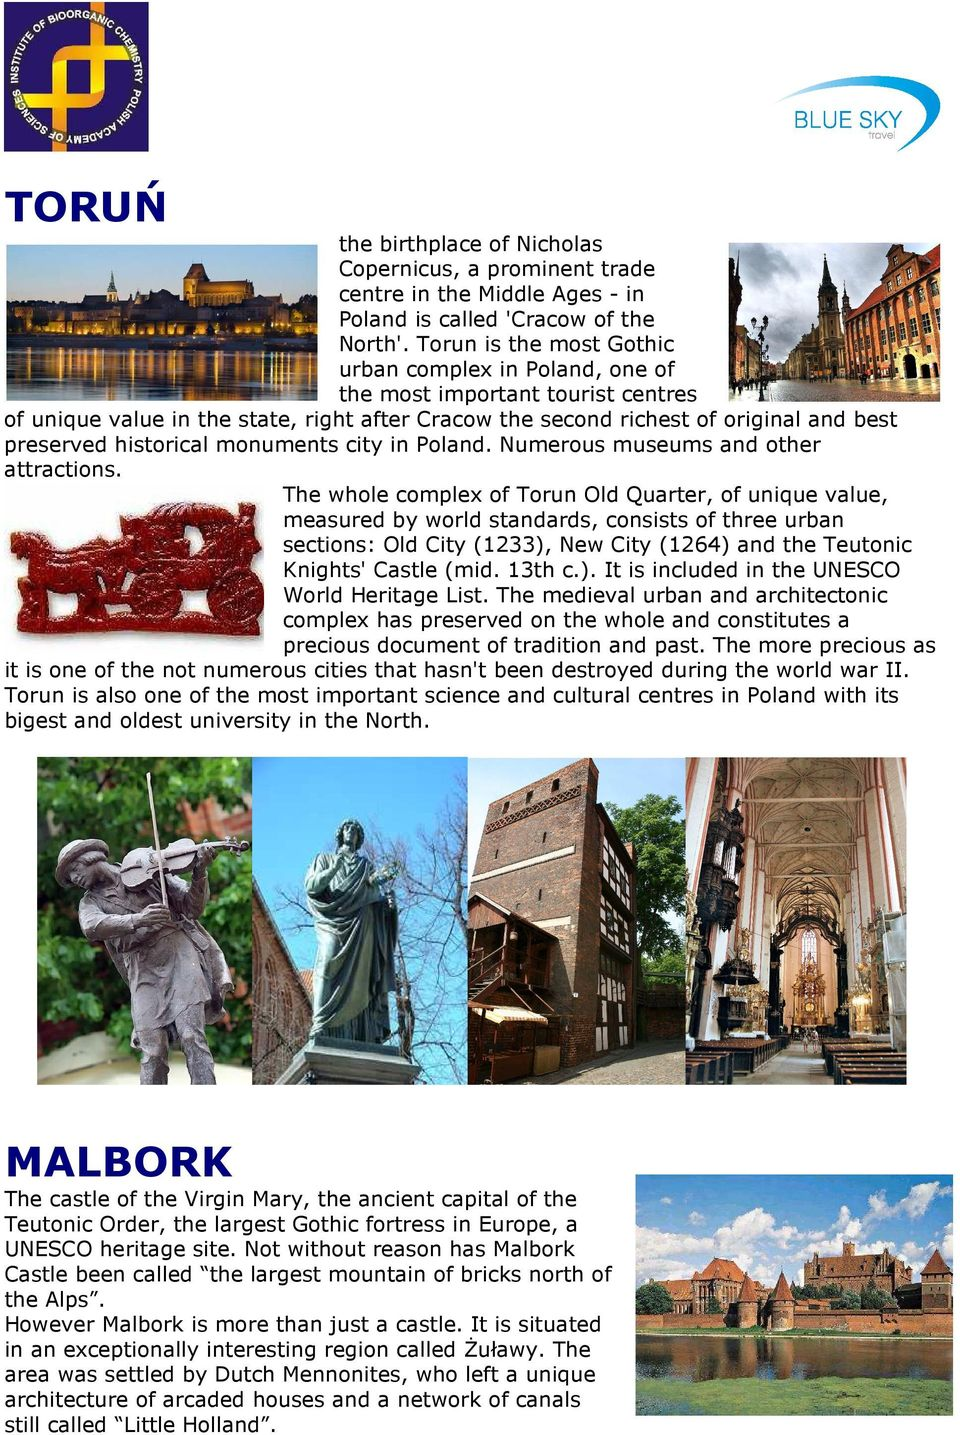 historical monuments city in Poland. Numerous museums and other attractions.